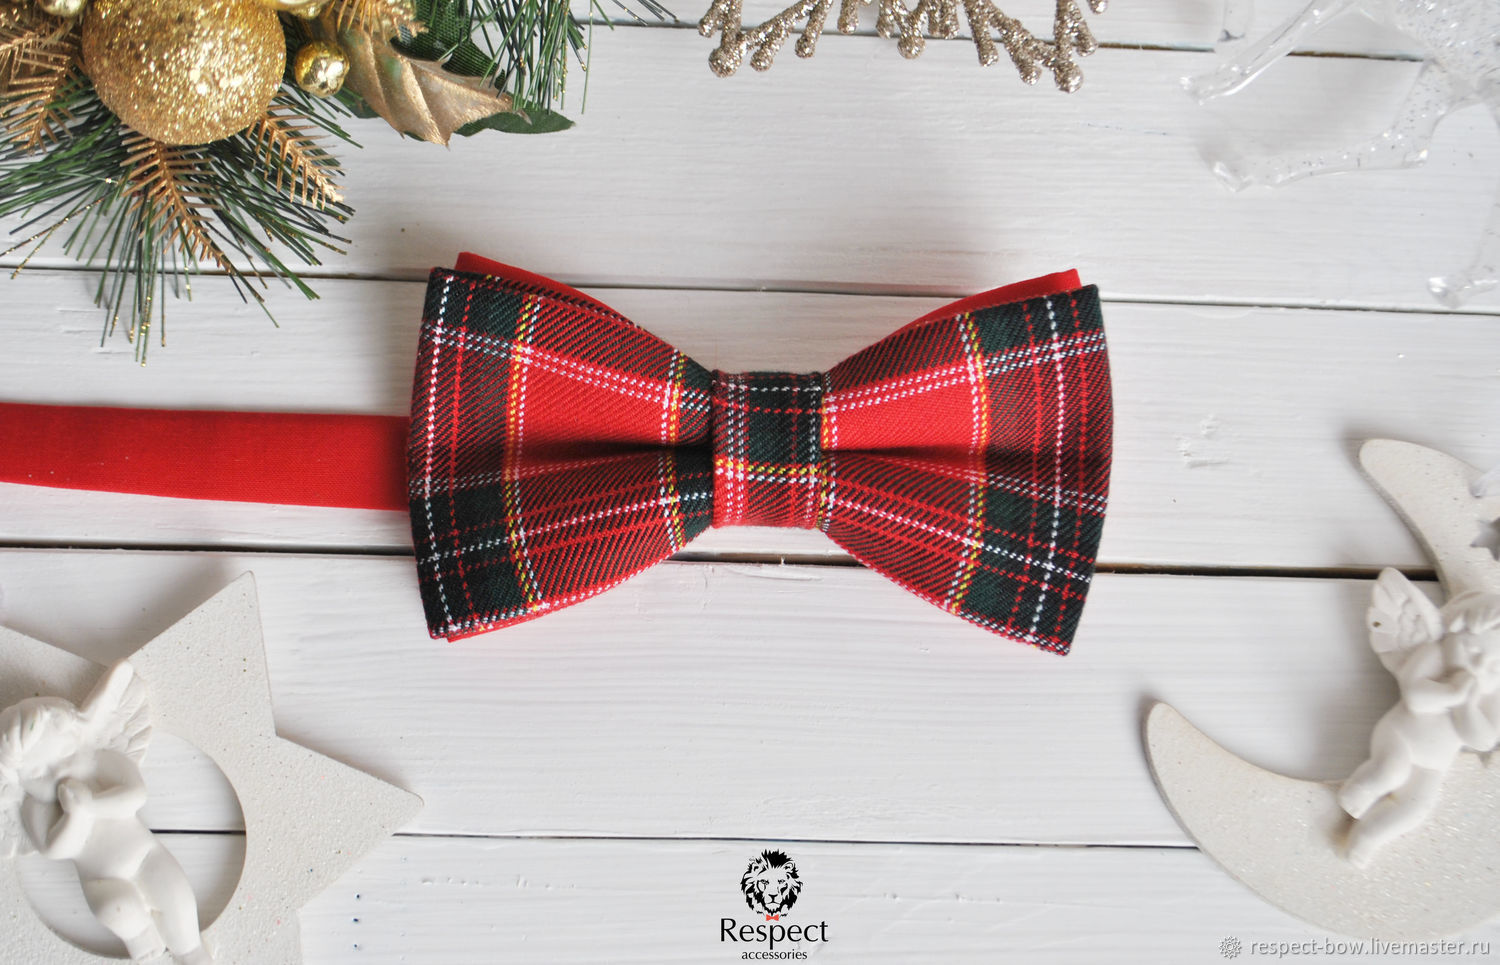 Red tie with a stunning Christmas plaid print Tartan. This sew Christmas gift wholesale and retail. As Christmas ties butterfly book wouldnaa corporate.